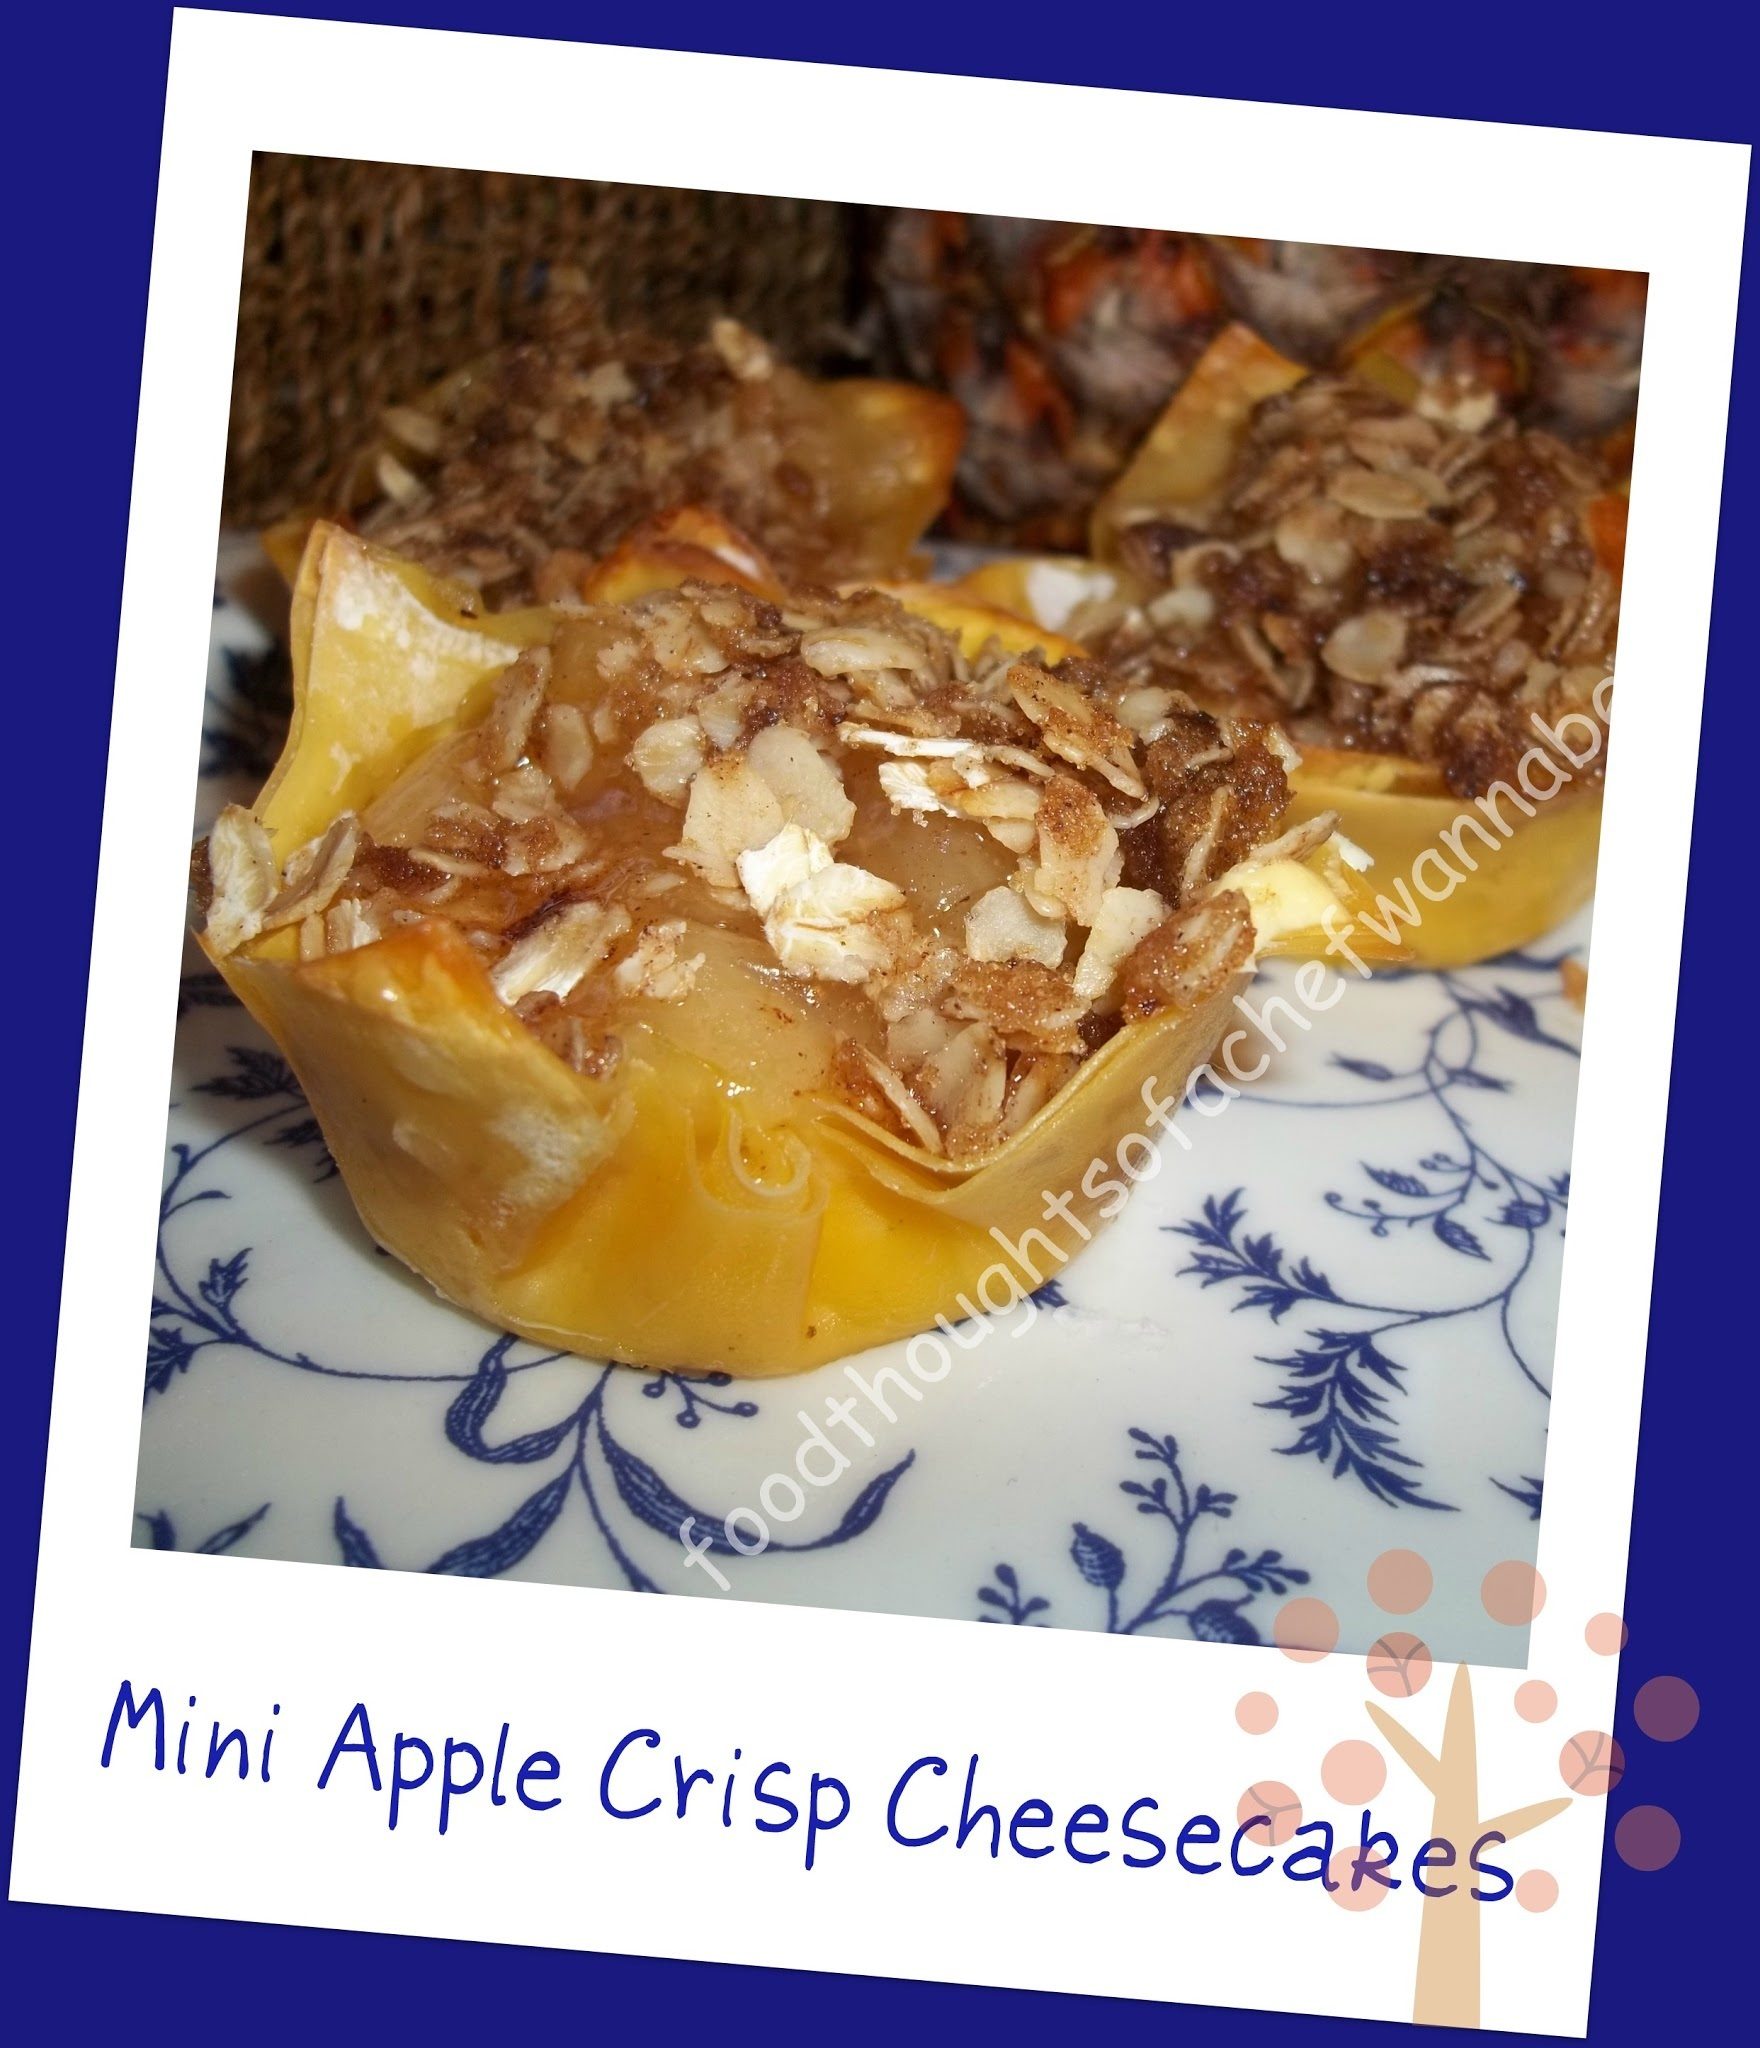 Mini Apple Crisp Cheesecakes